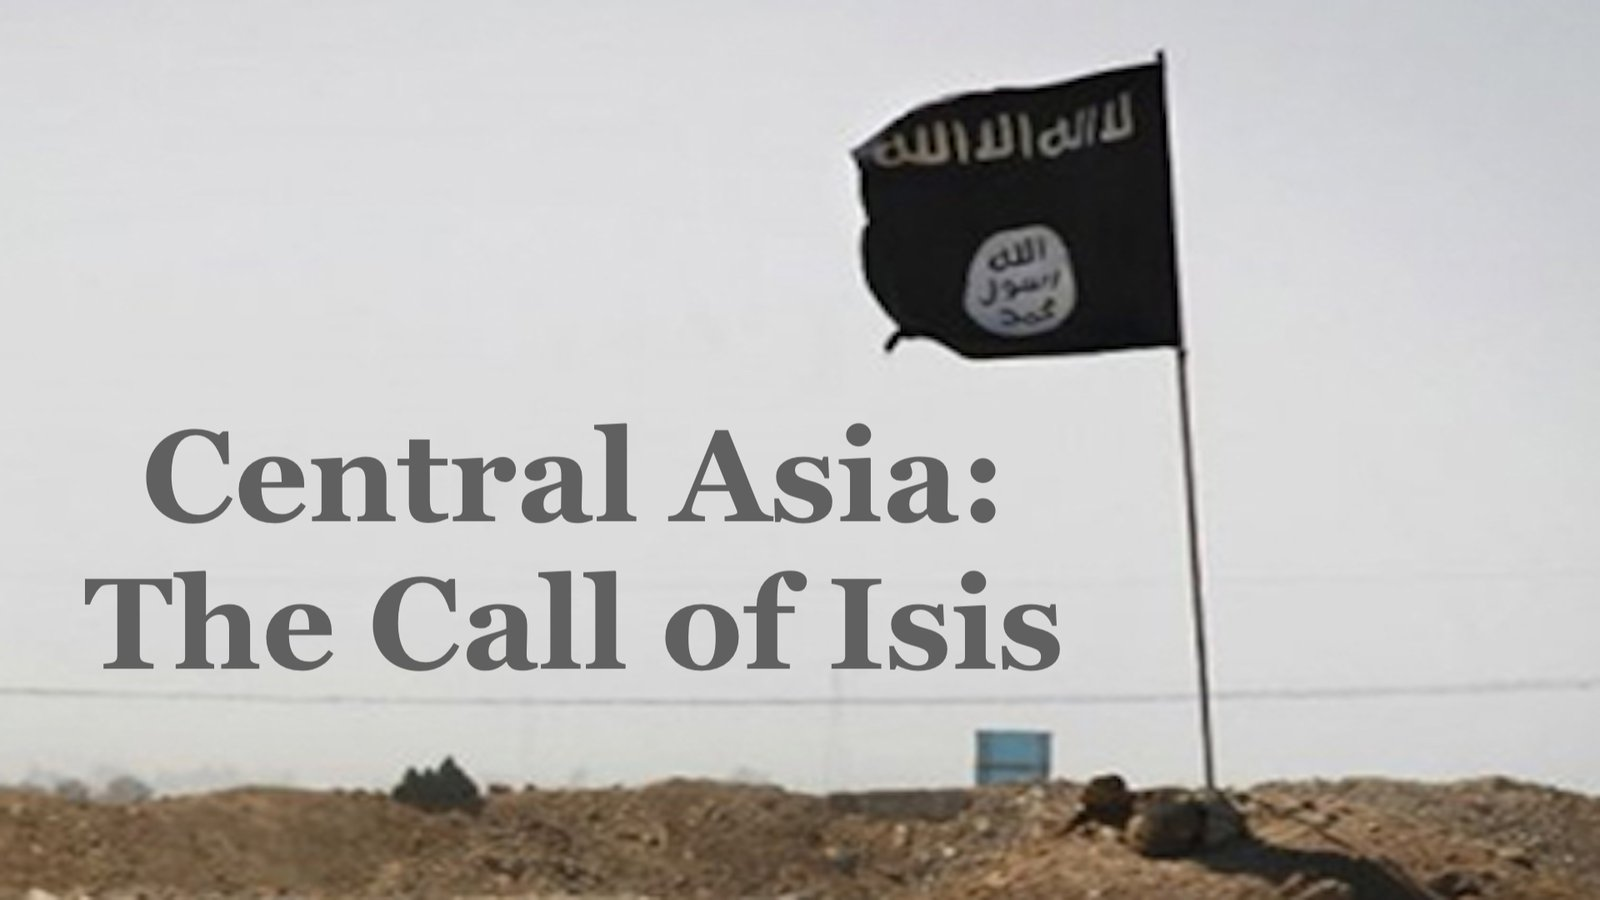 Central Asia: The Call of ISIS